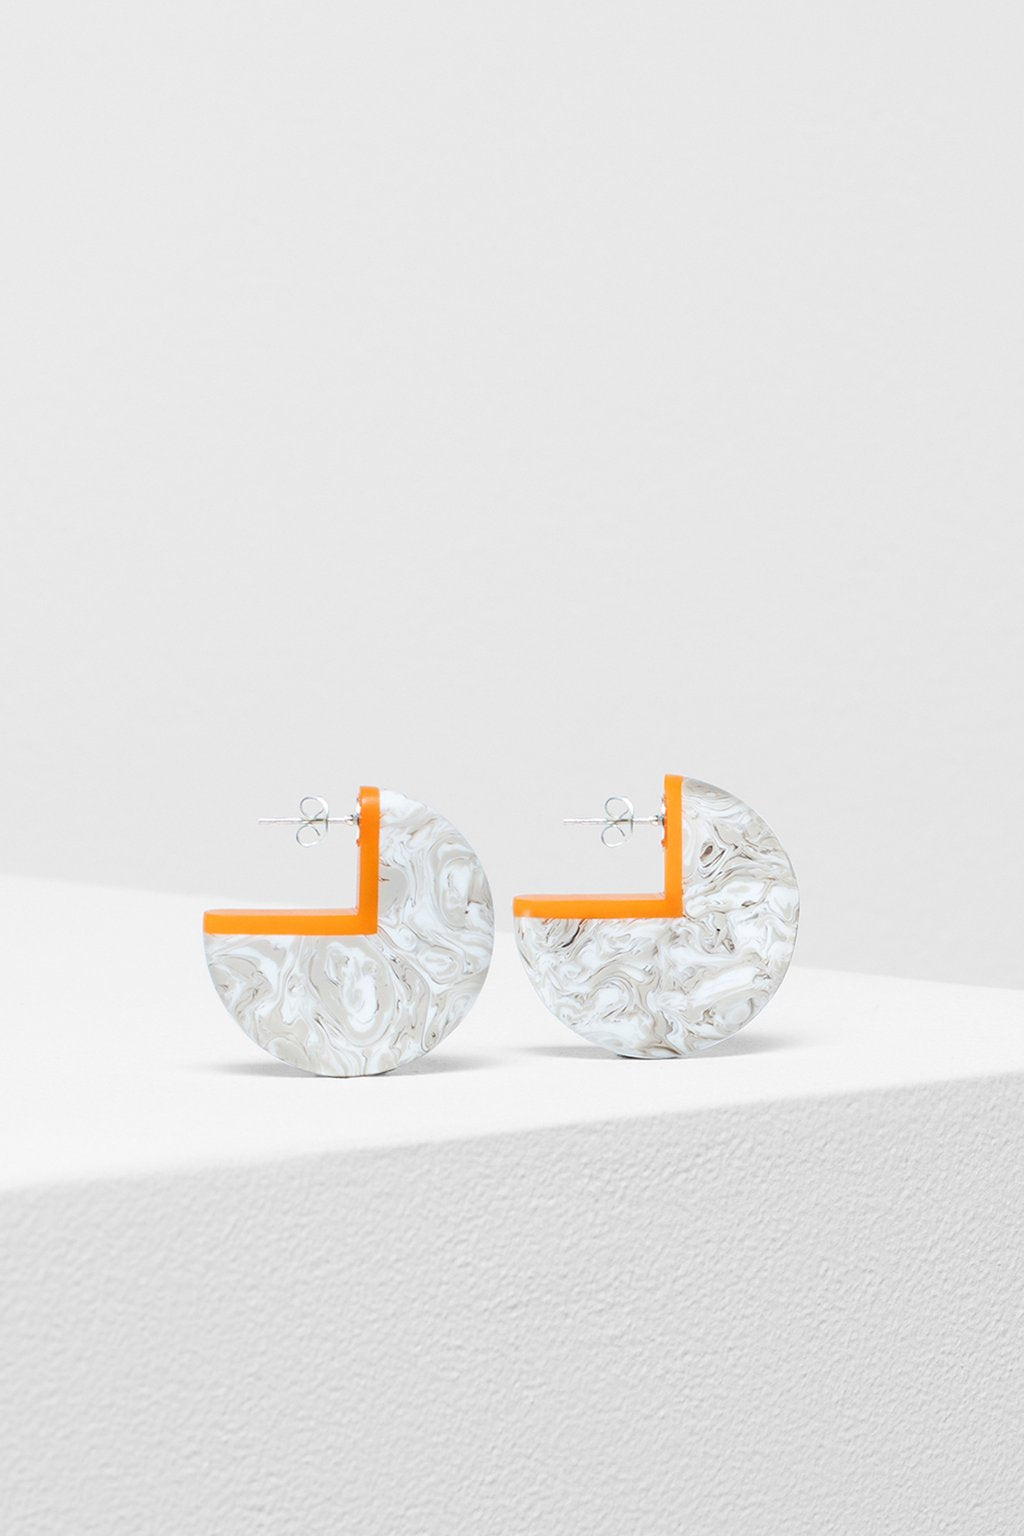 ELK The Label - Lanai Earrings - Mandarin online at PAYA boutique